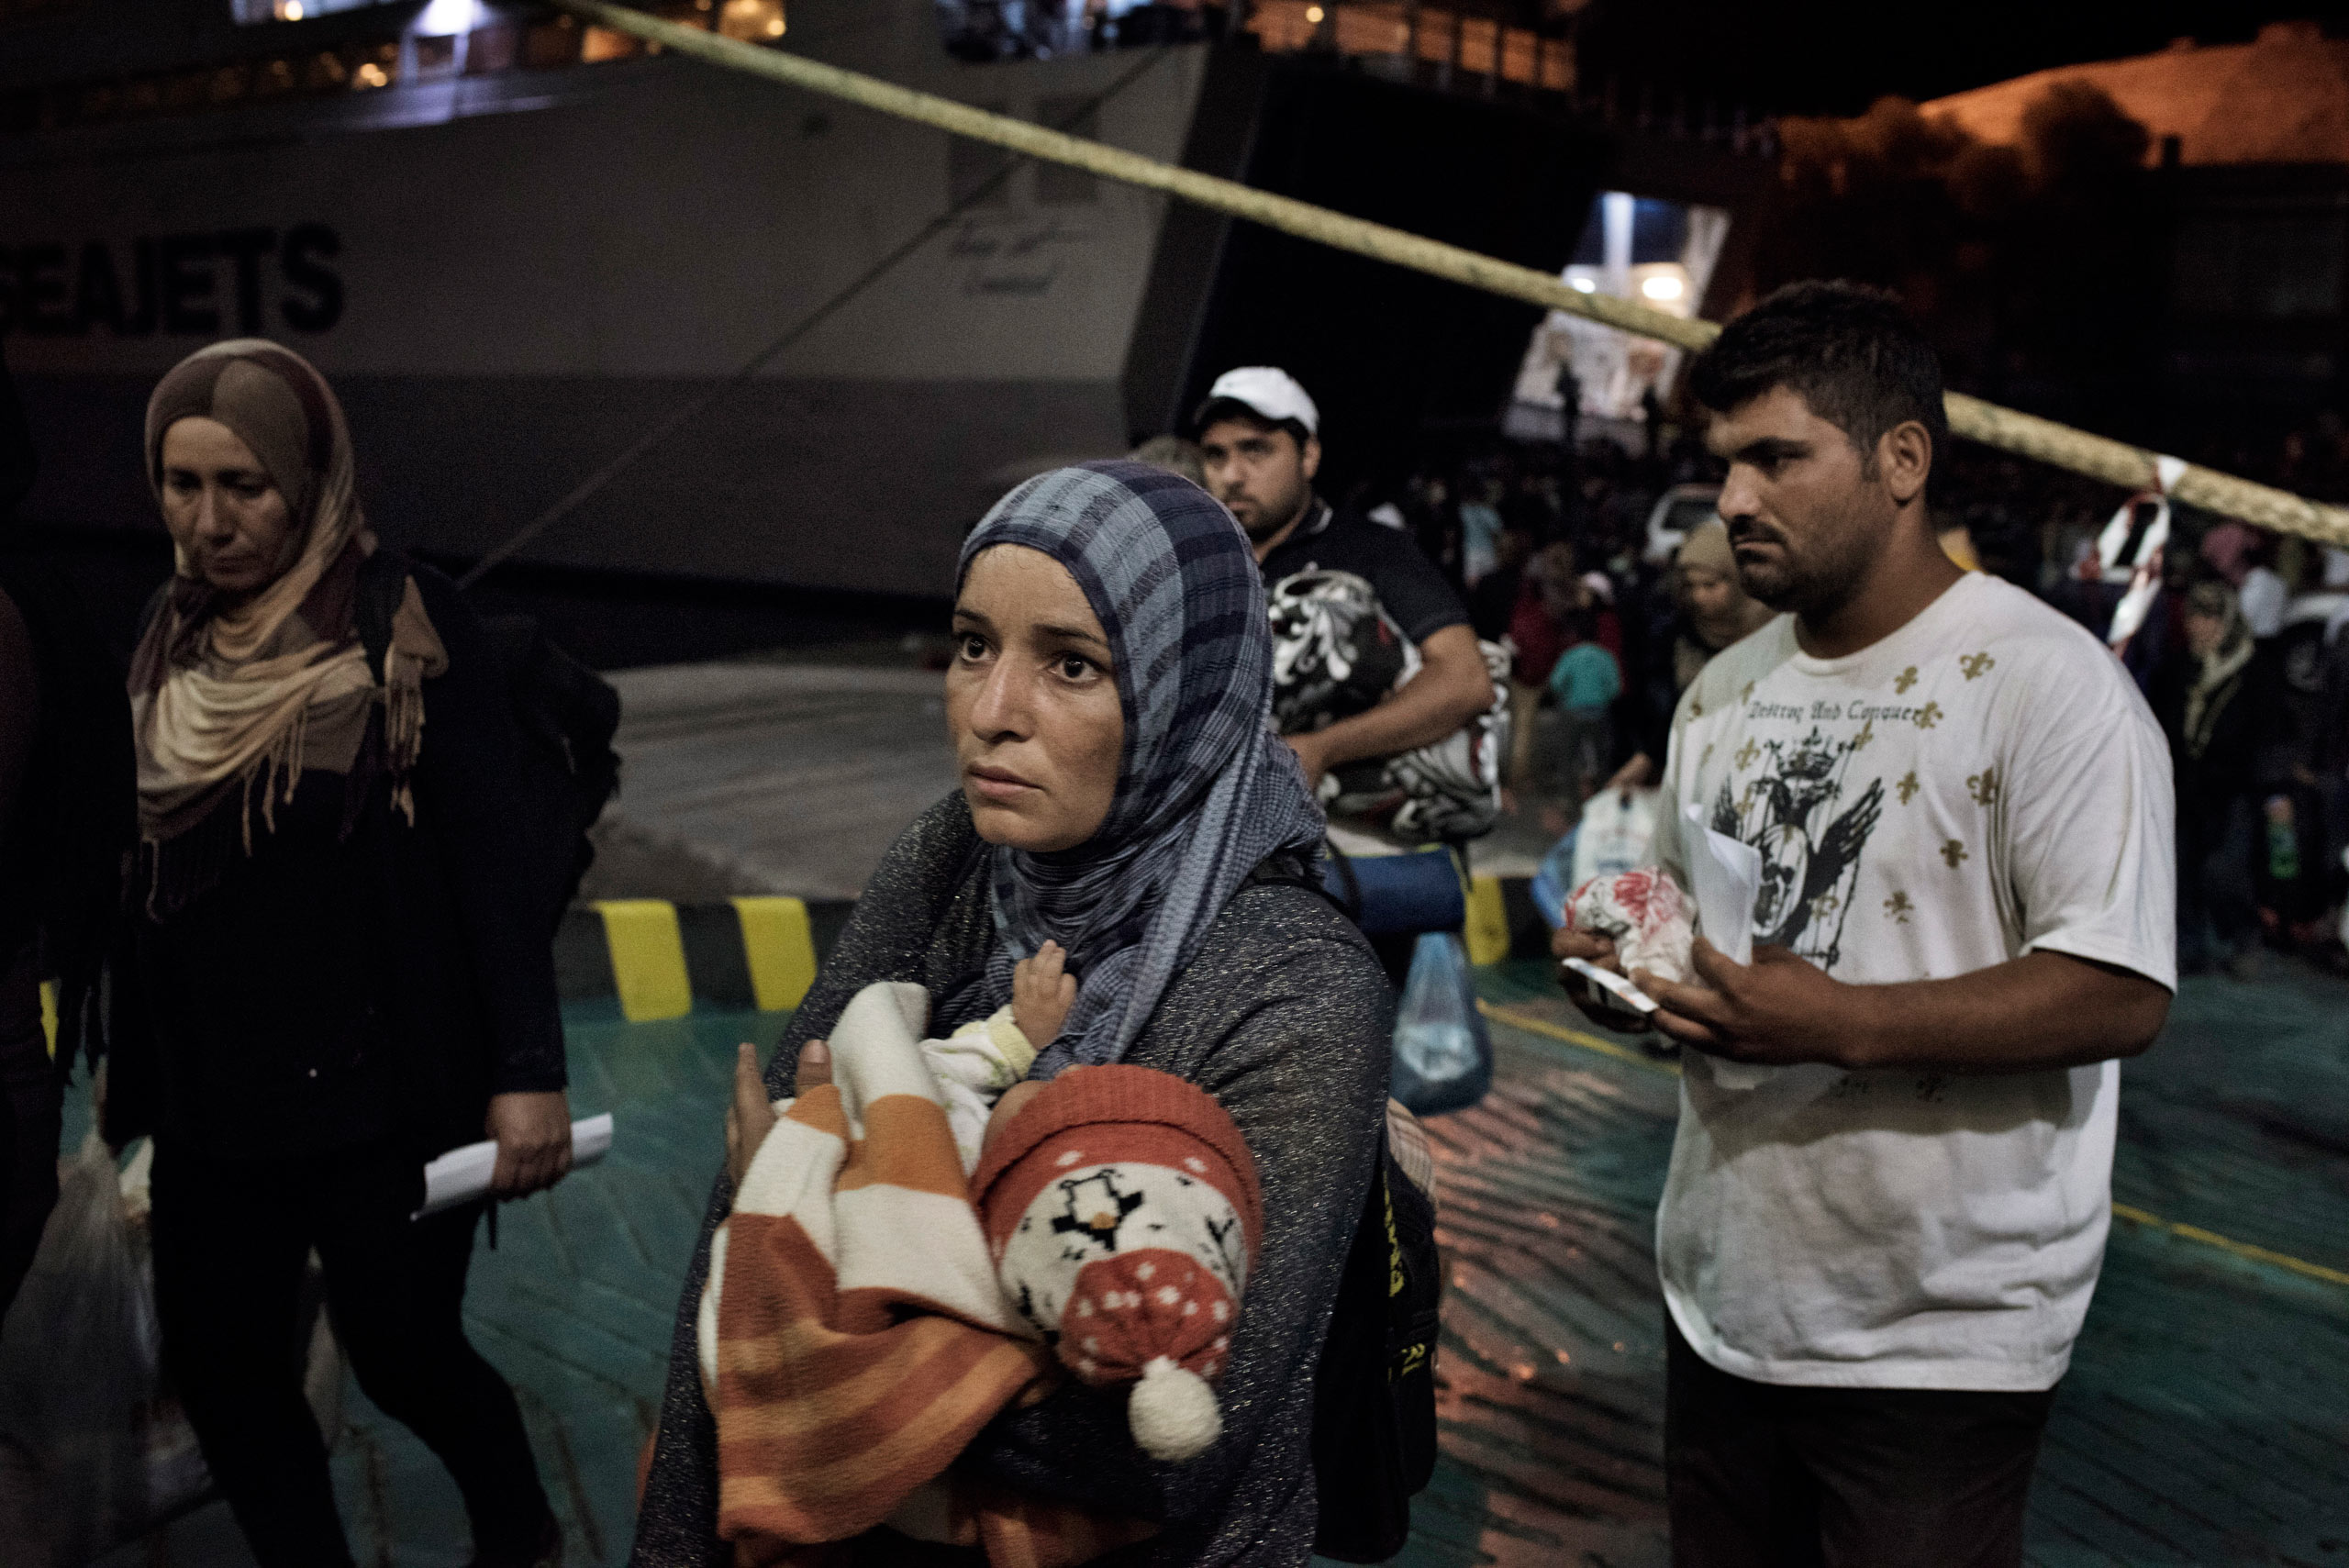 Migrants come aboard a cruise ship that the Greek government chartered to transport them to Athens from the Greek island of Lesbos. Sept. 5, 2015.